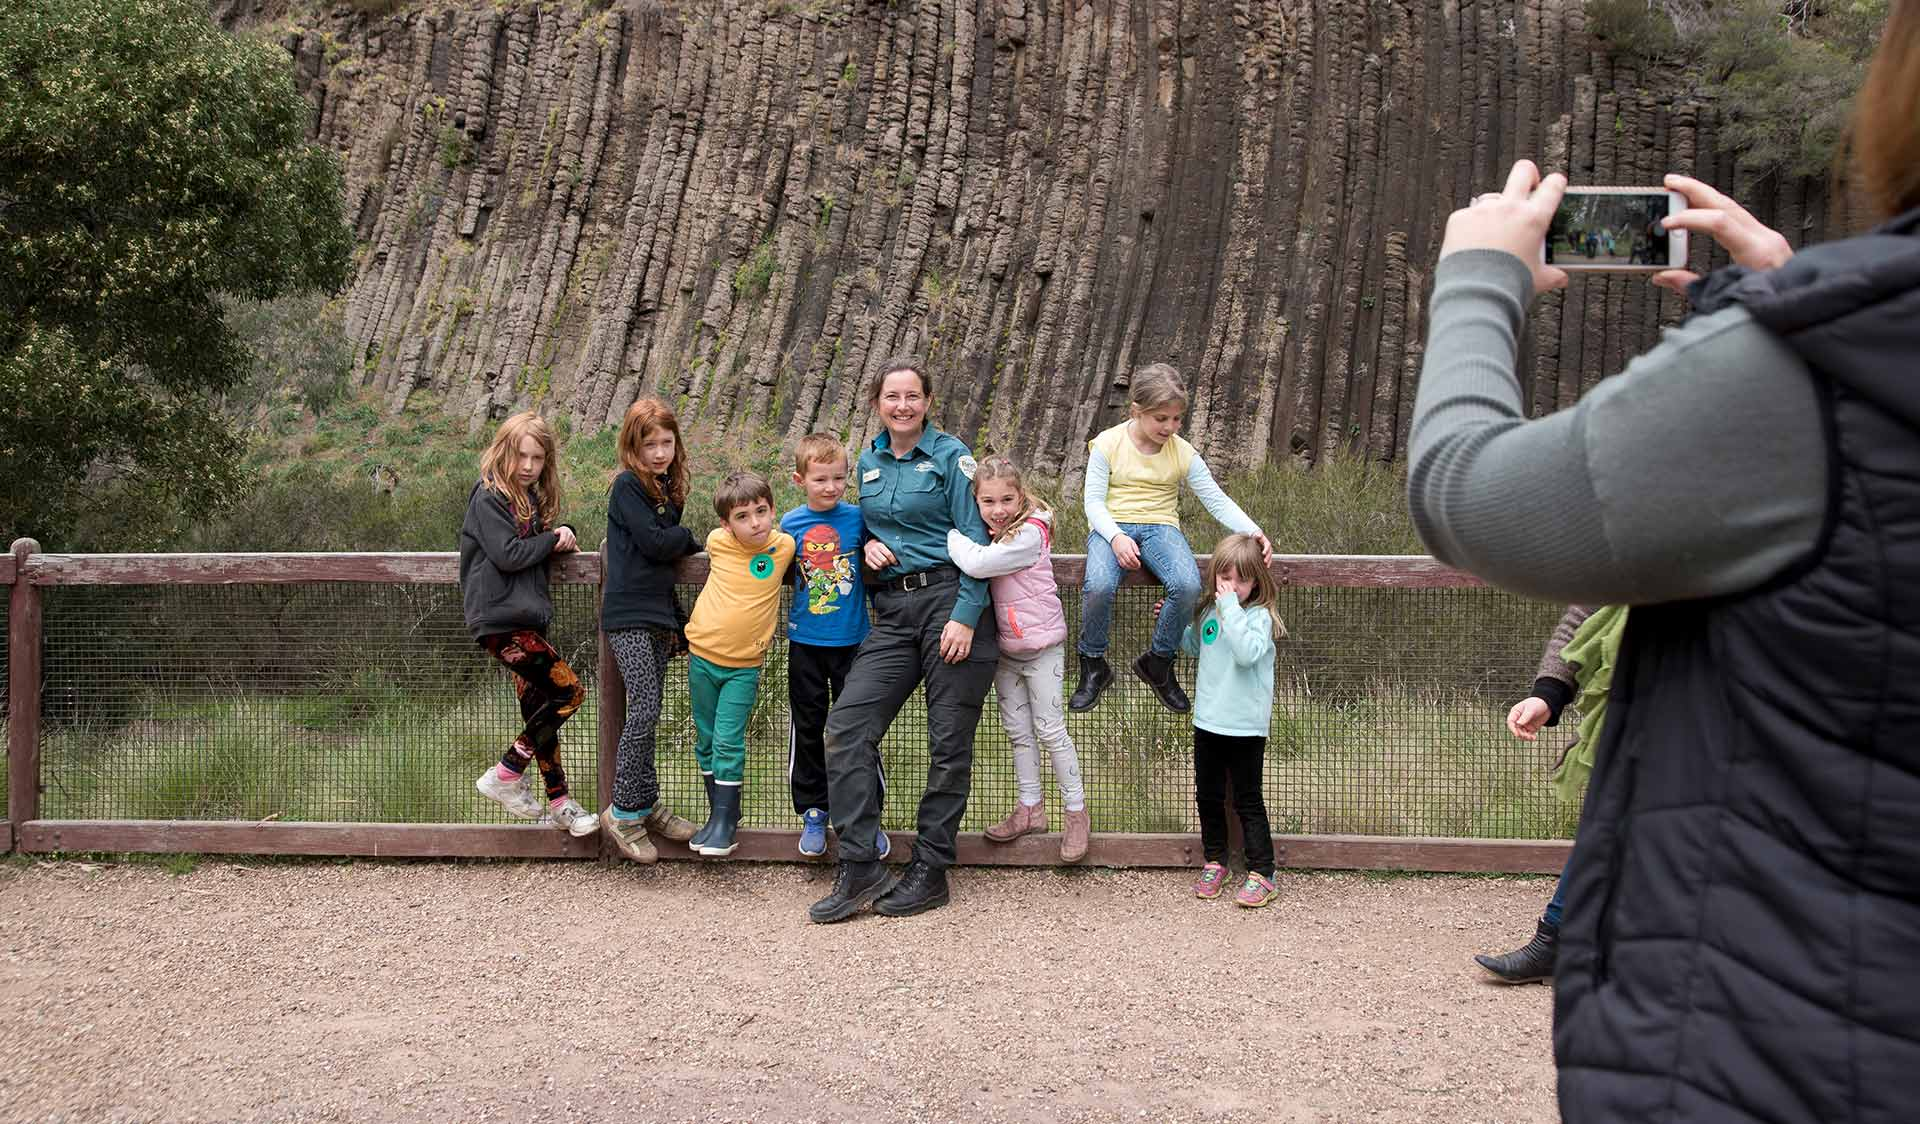 A Parks Victoria Ranger poses for a photograph with 7 young children in the Junior Rangers Program in front of the rock formation at Organ Pipes National Park.